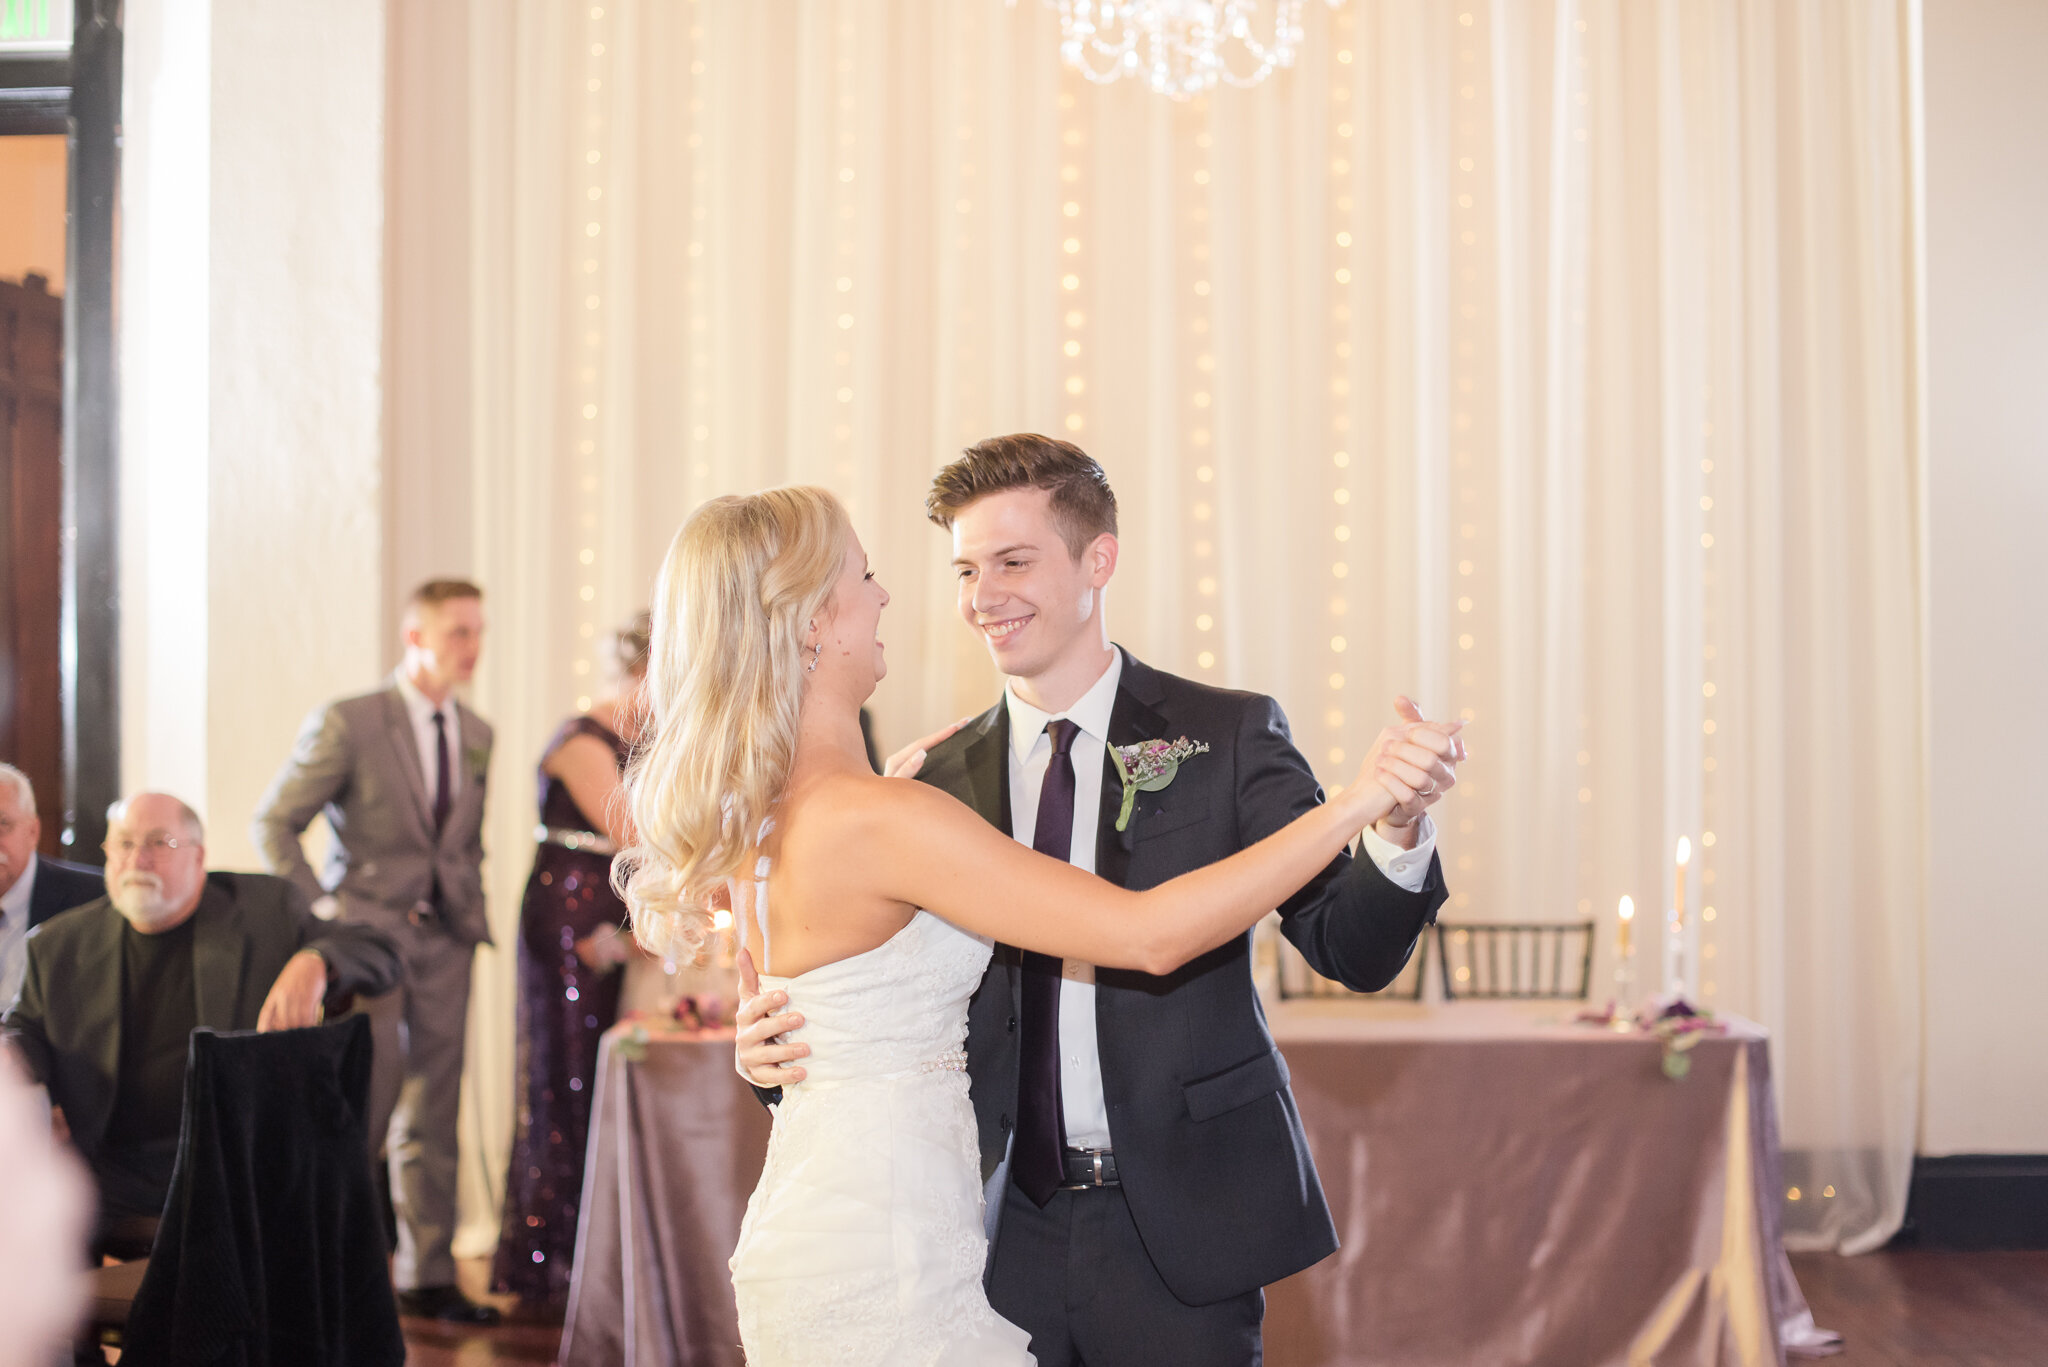 Downtown Indianapolis Wedding at Cyrus Place7991.jpg